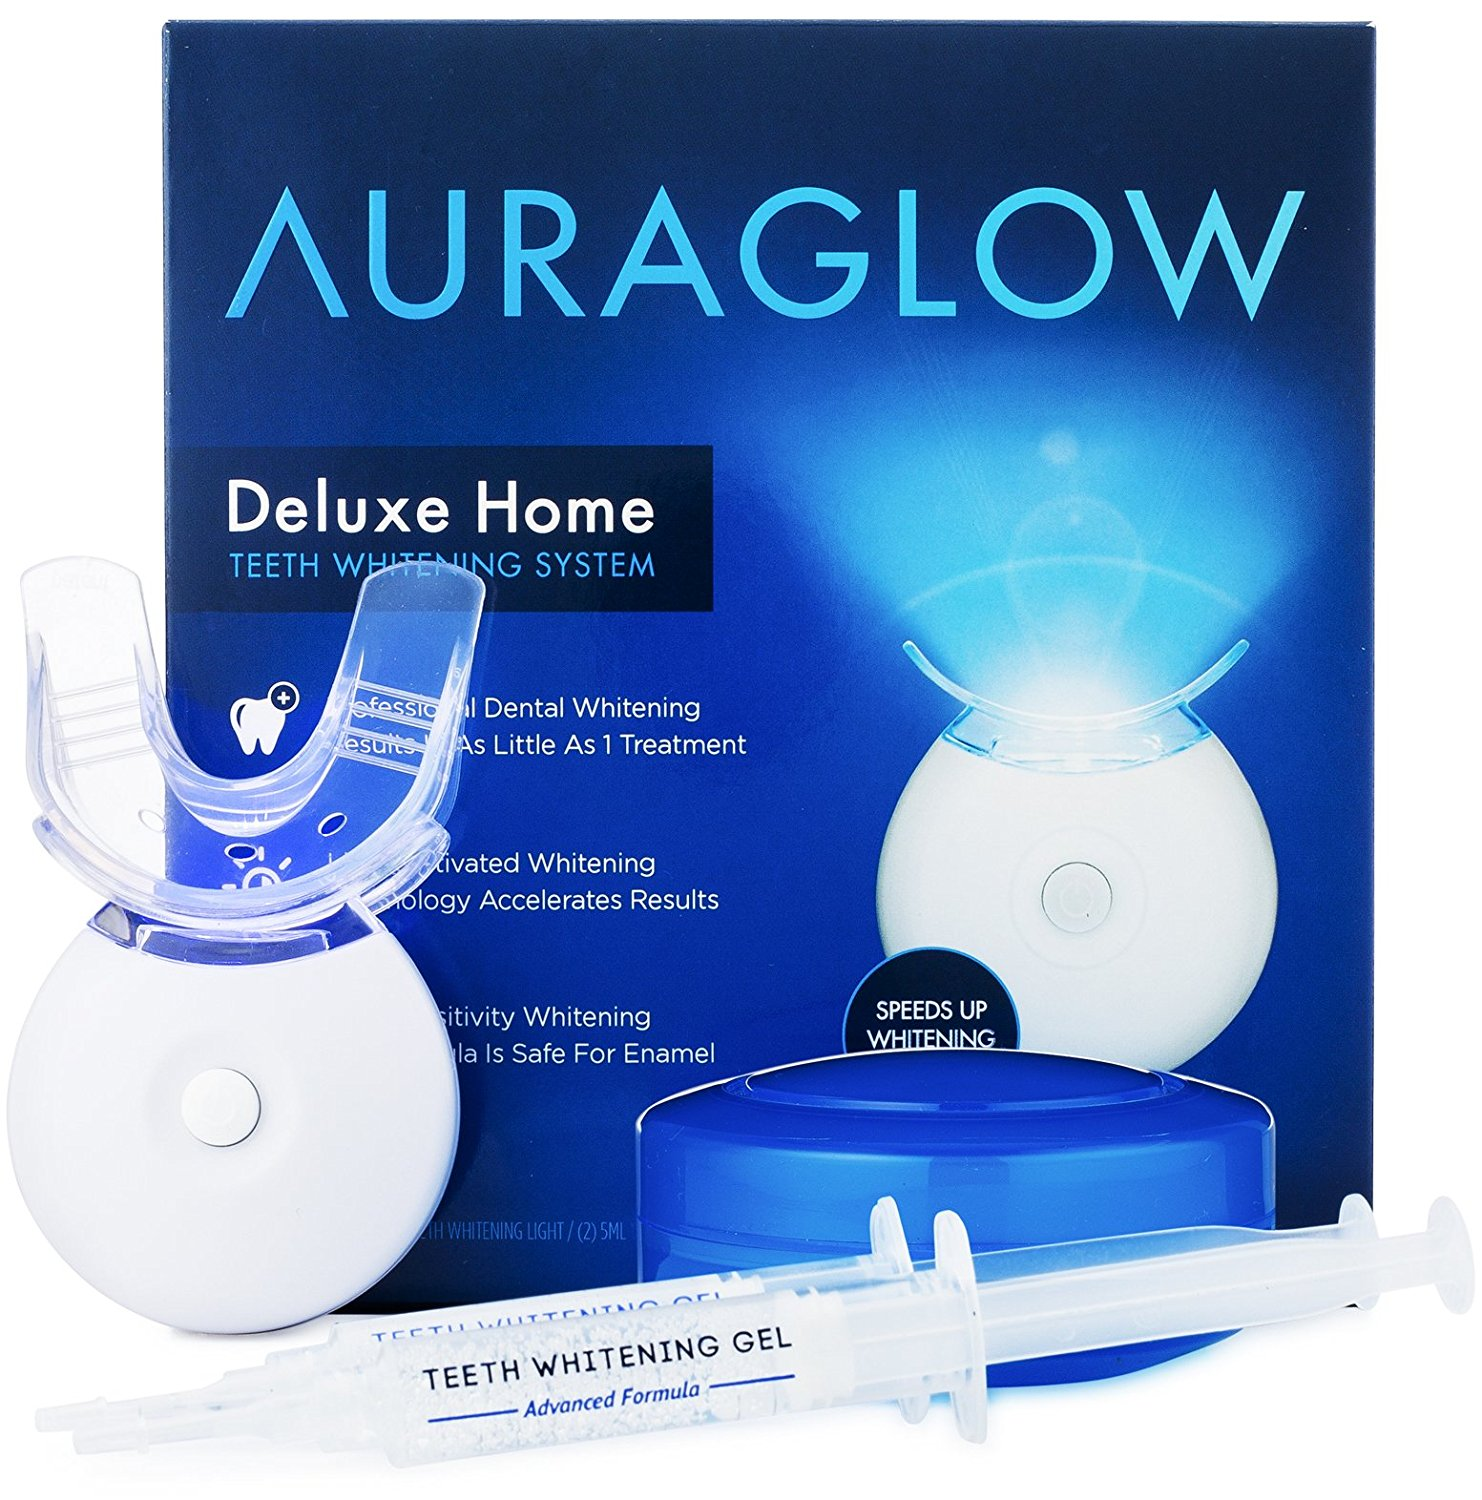 Auraglow Teeth Whitening Kit Led Light 35 Carbamide Peroxide 2 5ml Gel Syringes Tray And Case Walmart Com Walmart Com